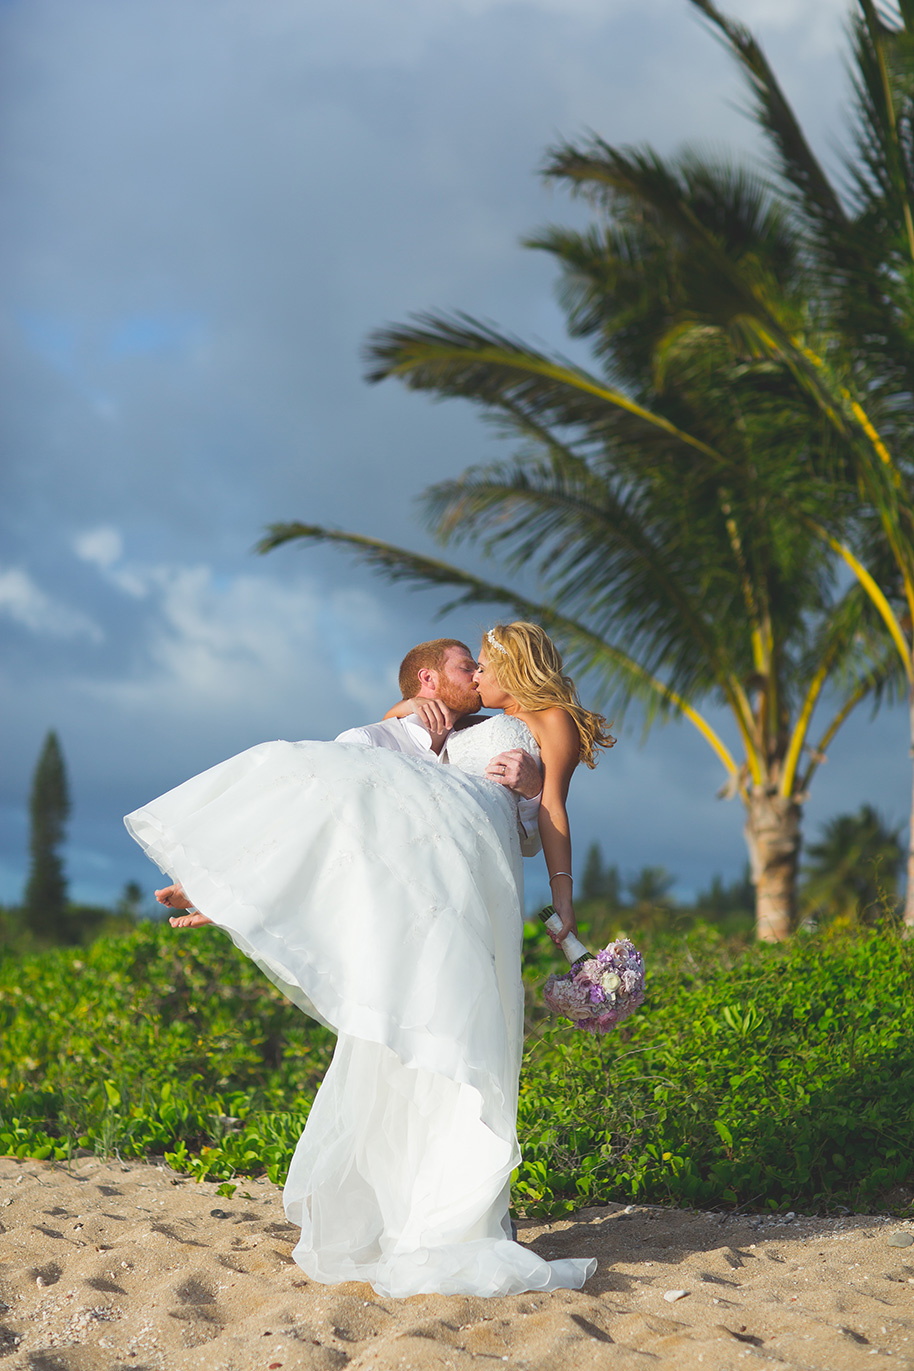 Maui-Beach-Wedding-042816-22